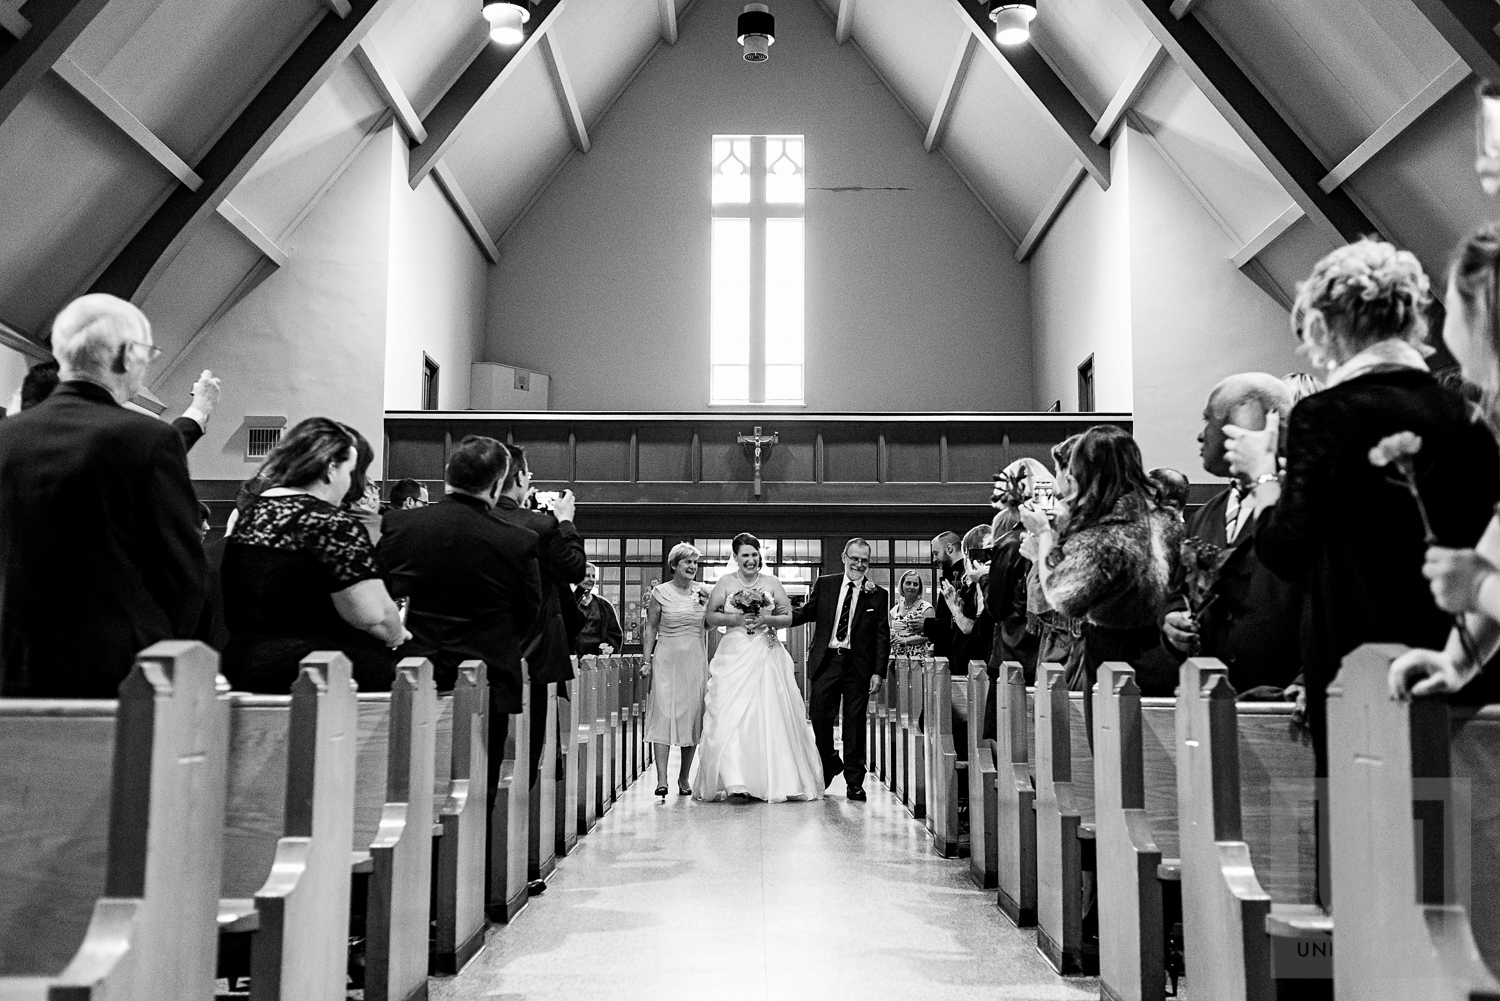 The bride being walked down the aisle by her parents